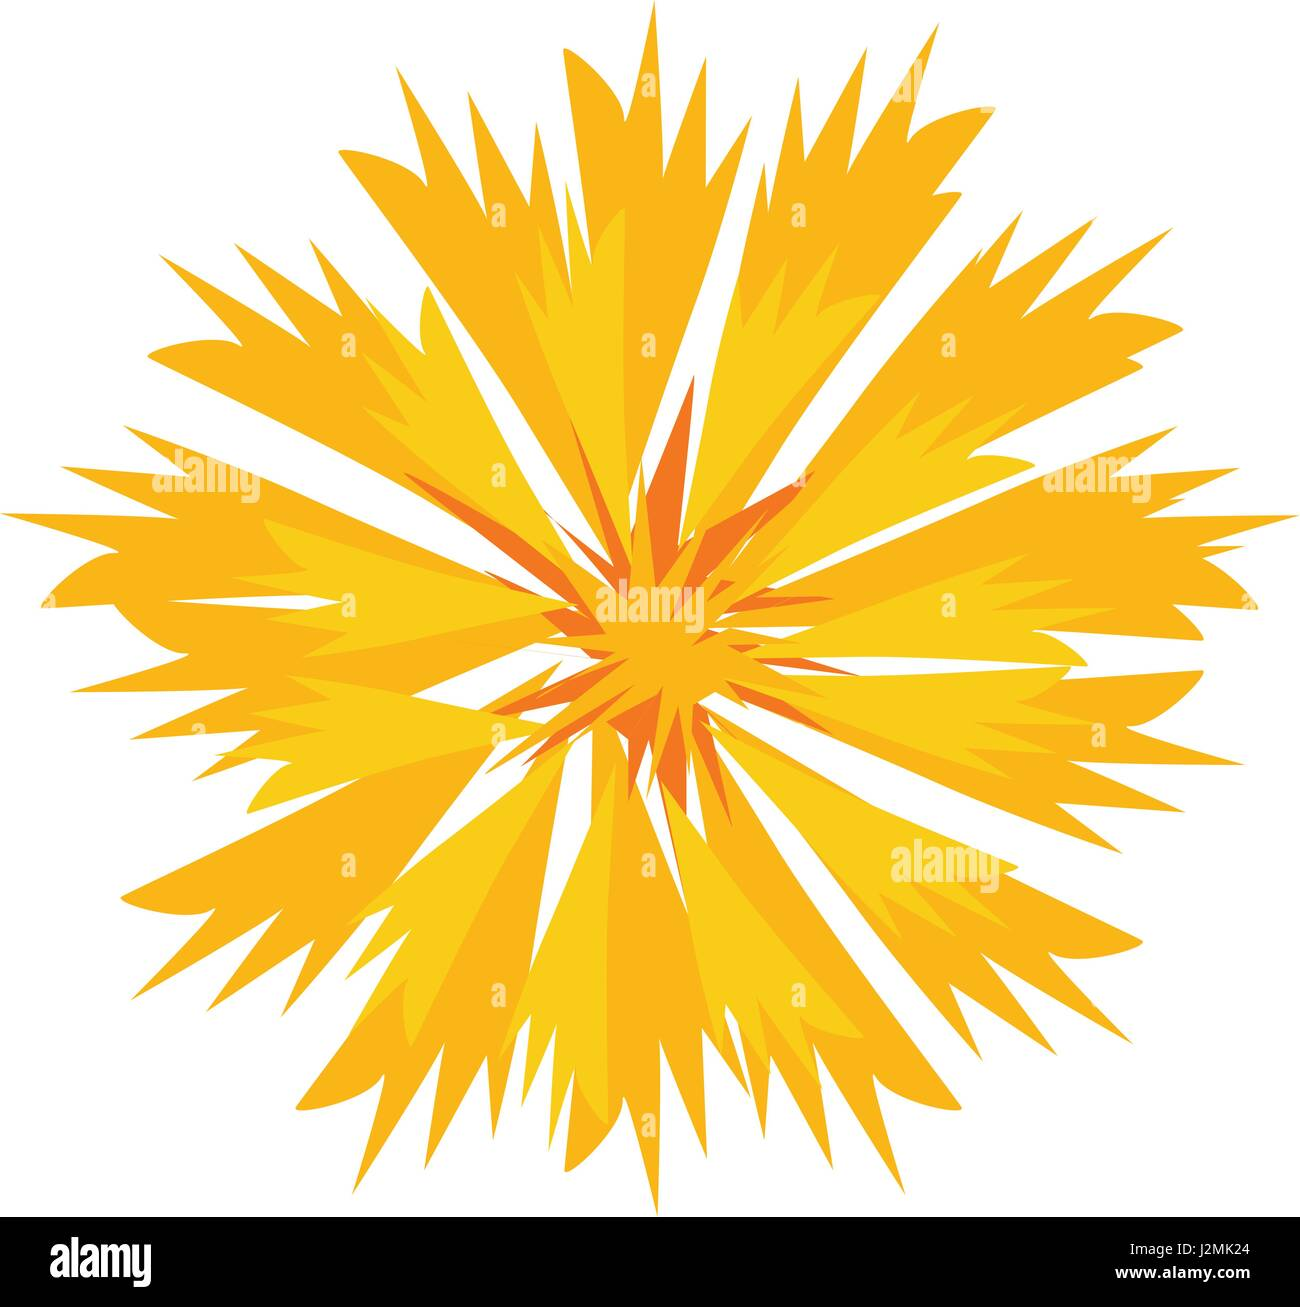 Gentle Yellow Flower Blossom in Vector - Stock Vector